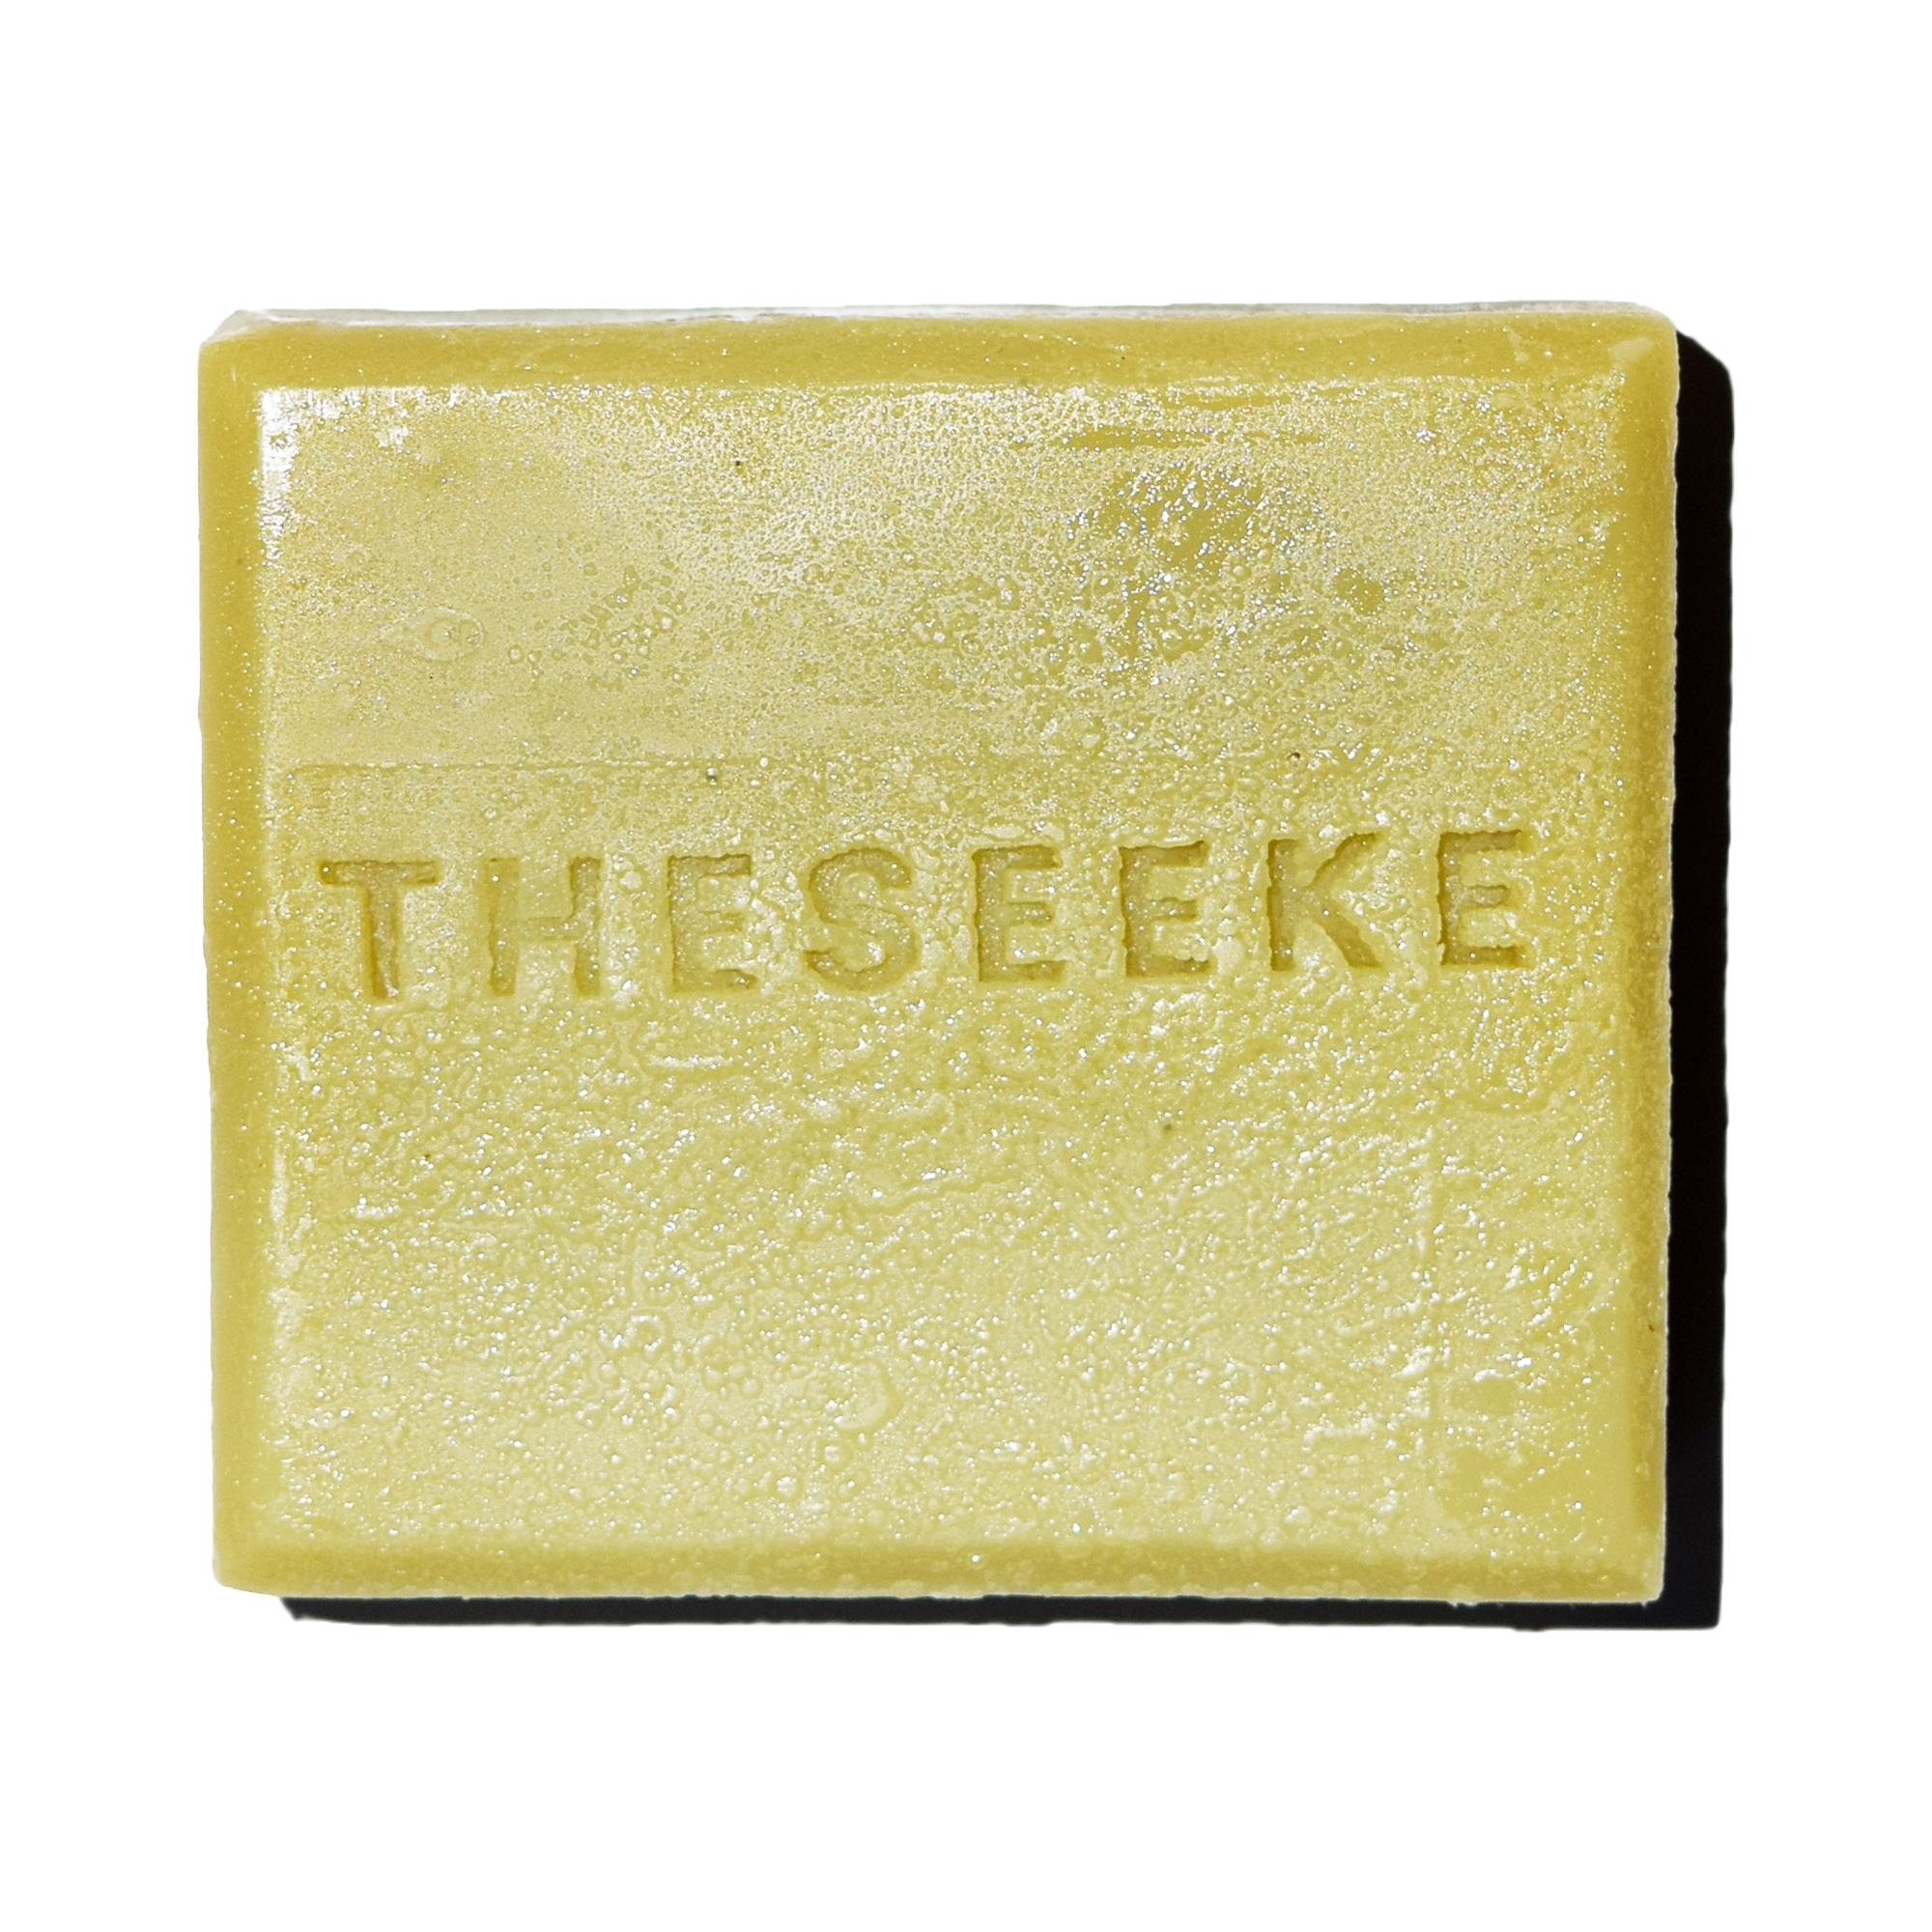 Theseeke Green Clay Cleanse Bar 100g